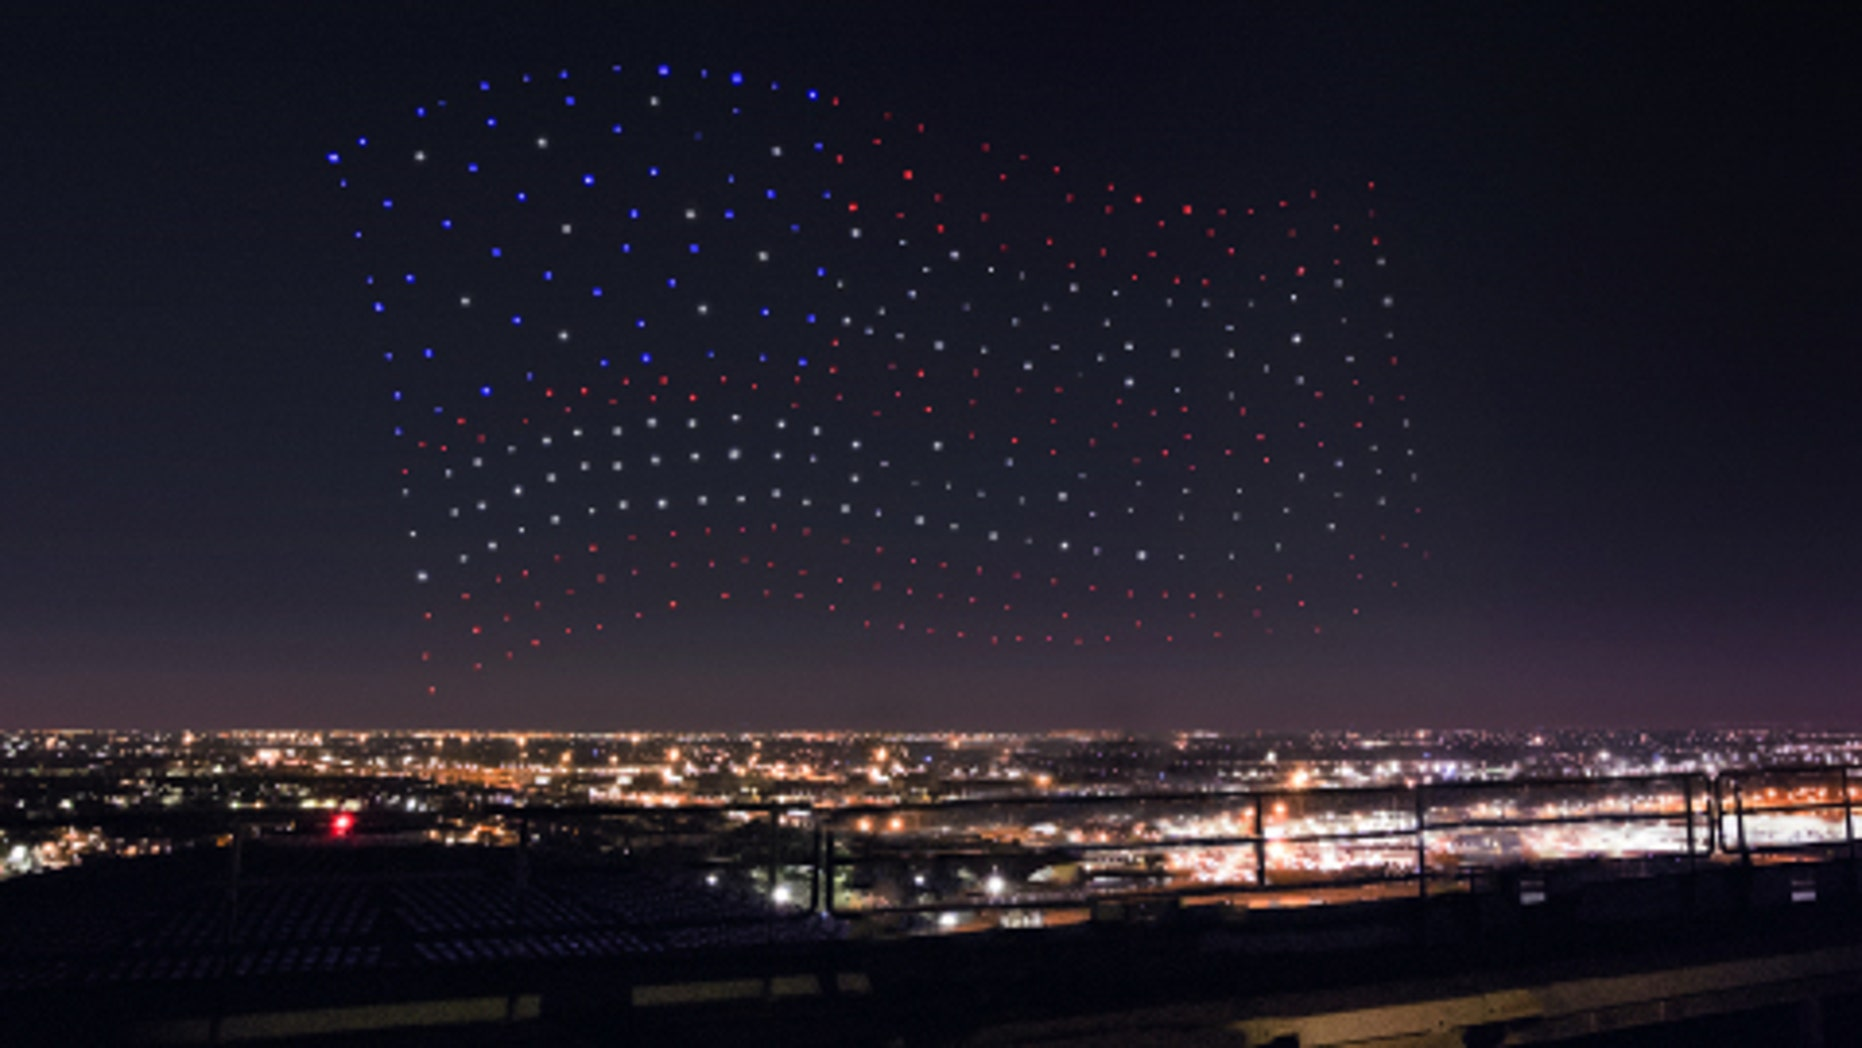 An Intel Shooting Star drones fleet lights up the sky in an American Flag formation during the Pepsi Zero Sugar Super Bowl LI Halftime Show on Sunday, Feb. 5, 2017. (Credit: Intel Corporation)